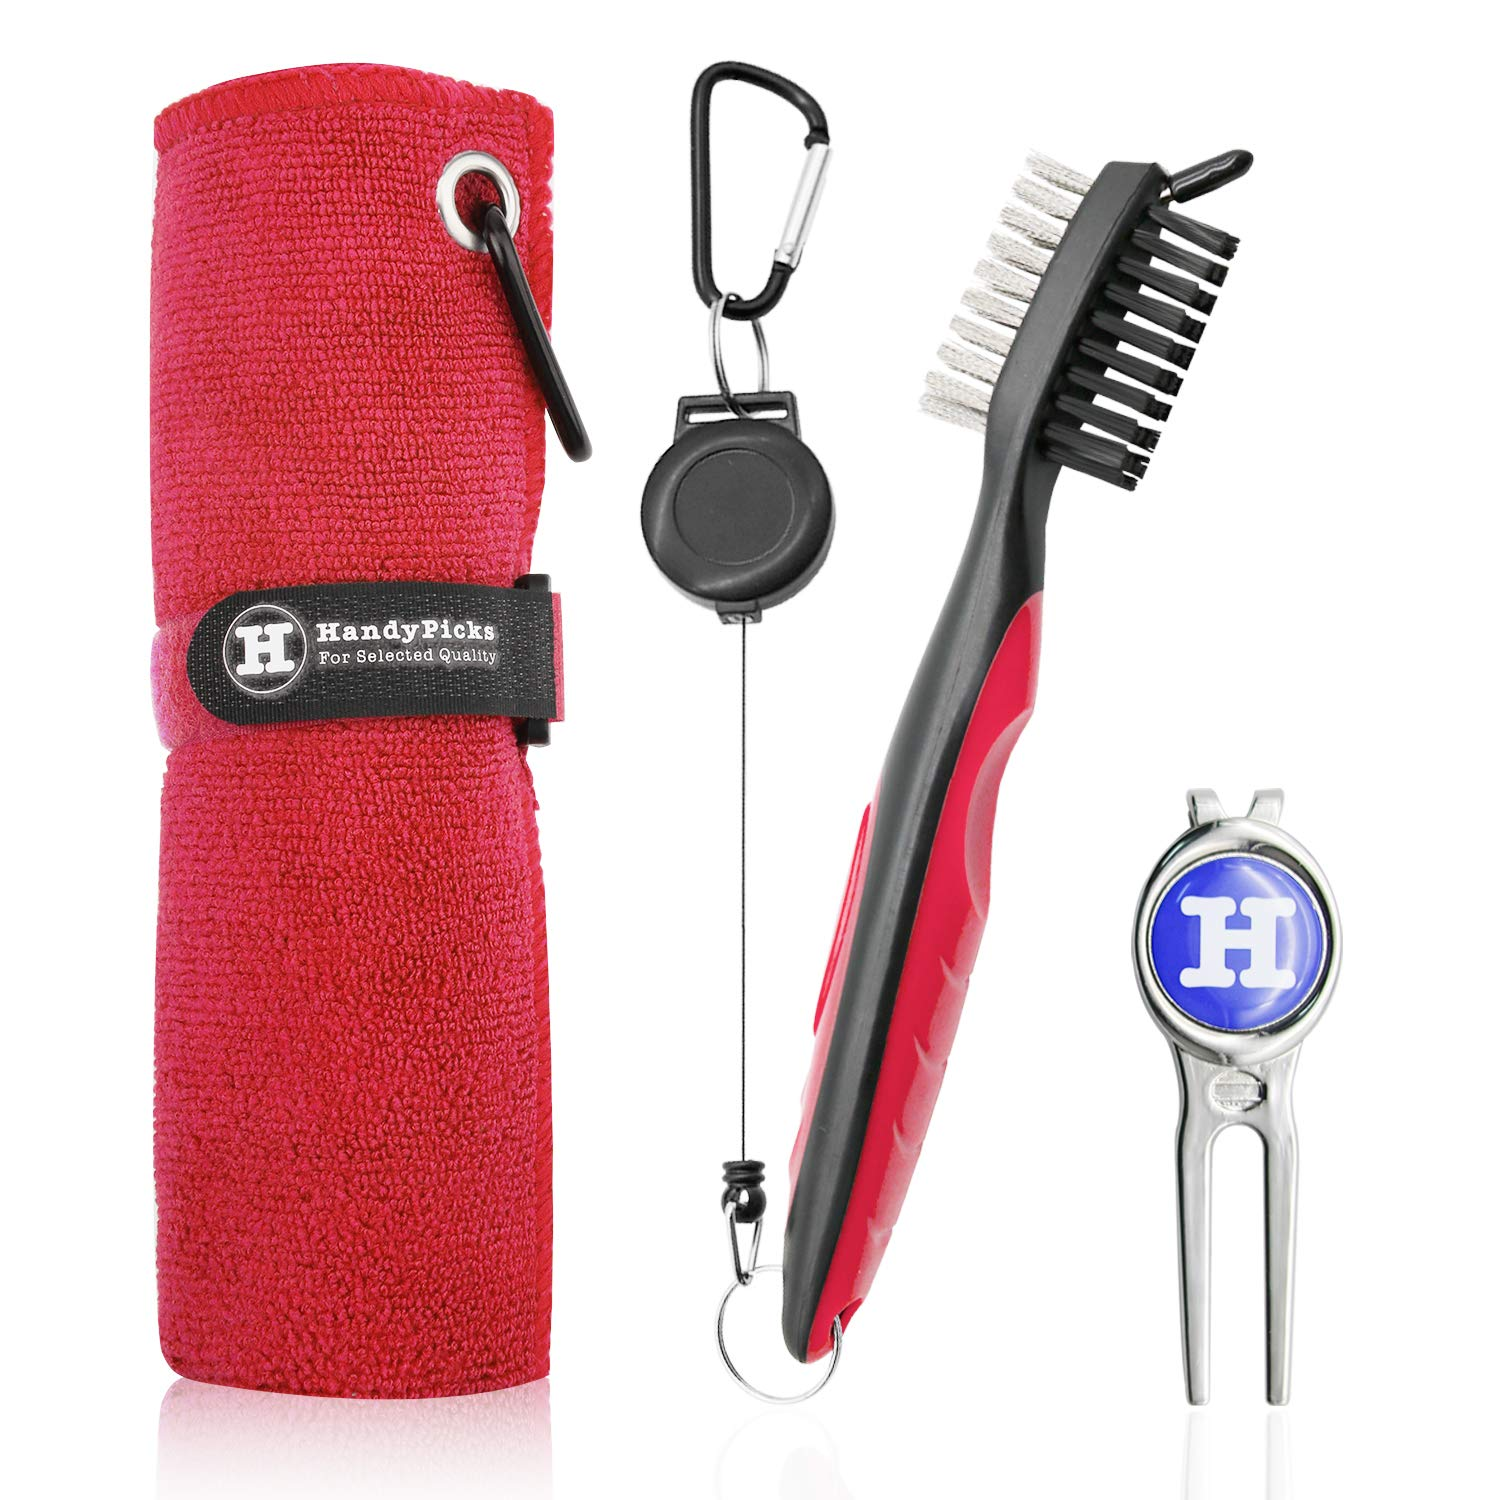 Handy Picks Microfiber Golf Towel (16'' X 16'') with Carabiner, Club Brush, Golf Divot Repair Tool with Ball Marker - Golf Accessories, Ideal for Golfers - 3 in 1 Golf Cleaning Kit (Pack of 3, Red)